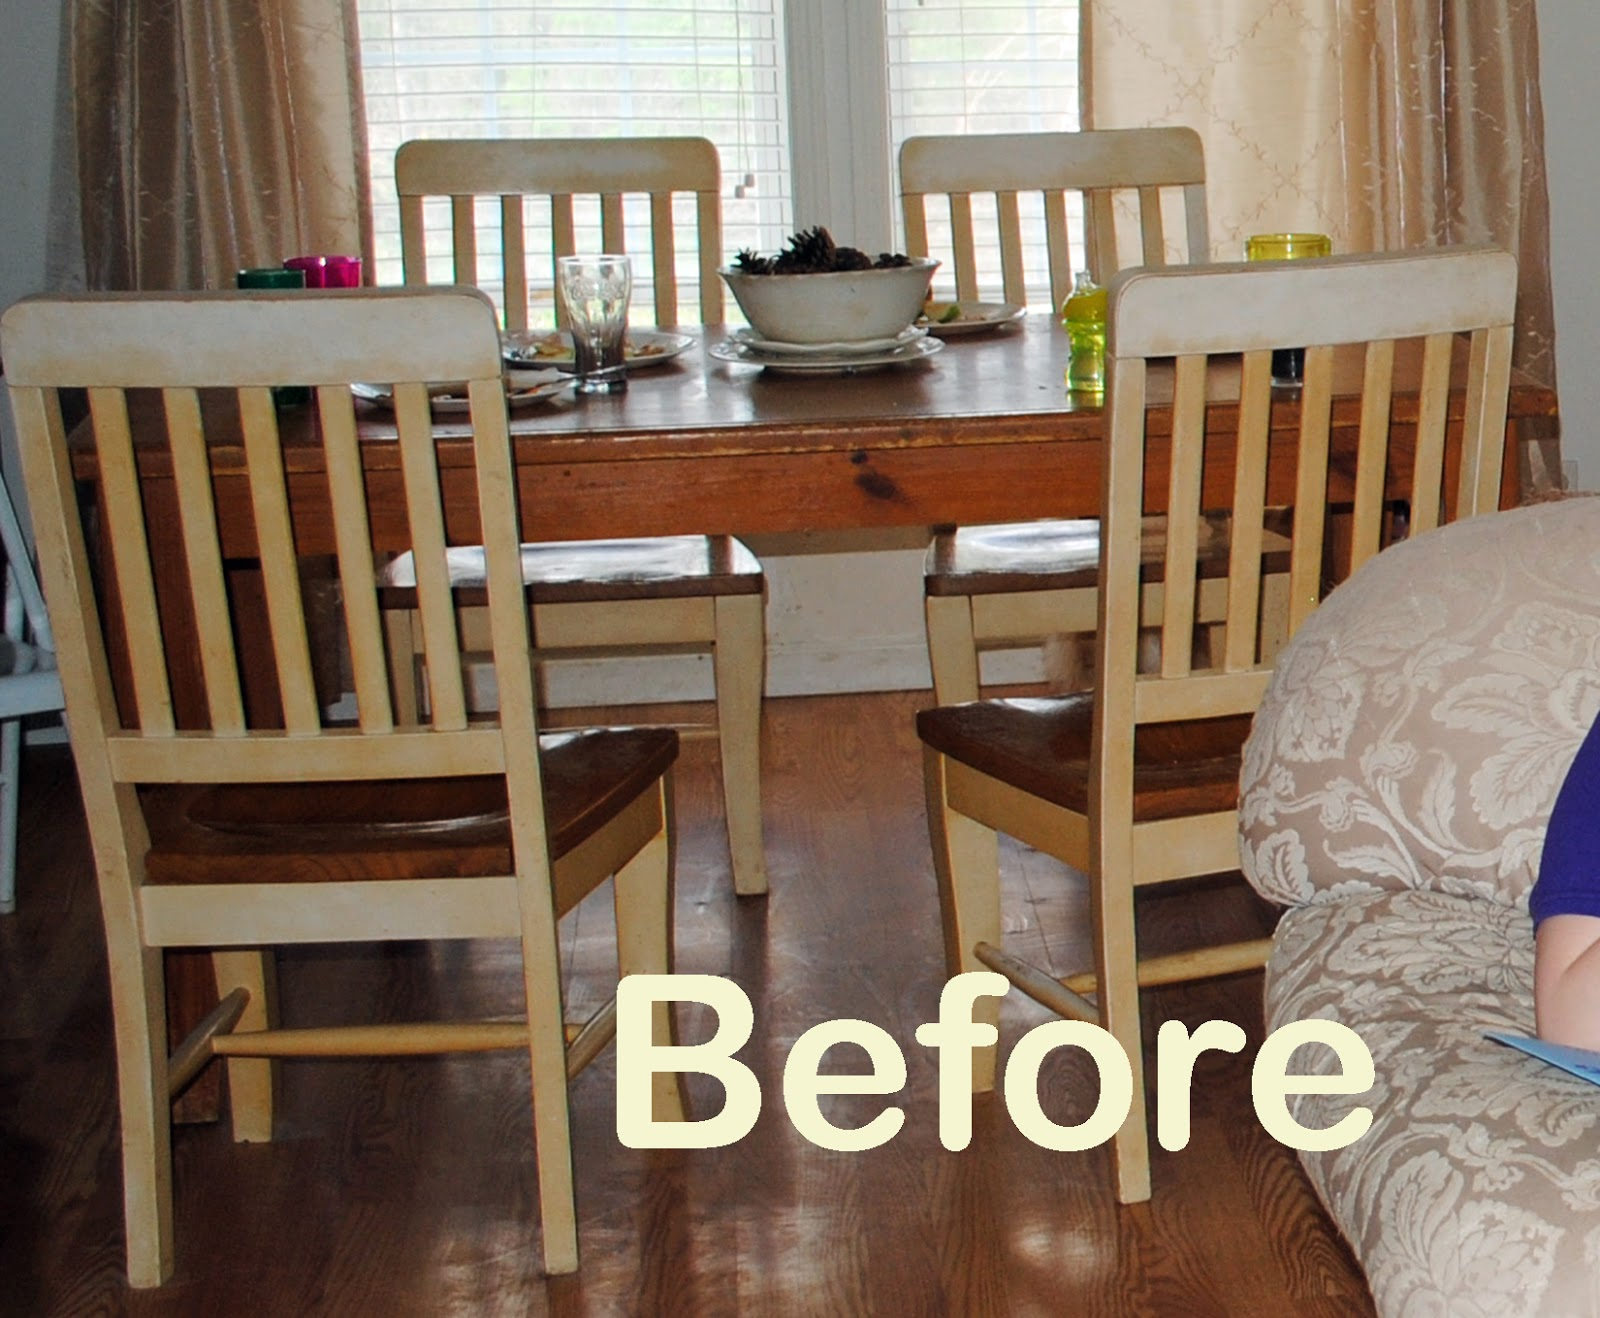 Ordinaire Refinish An Old Knotty Pine Dining Table: The Story